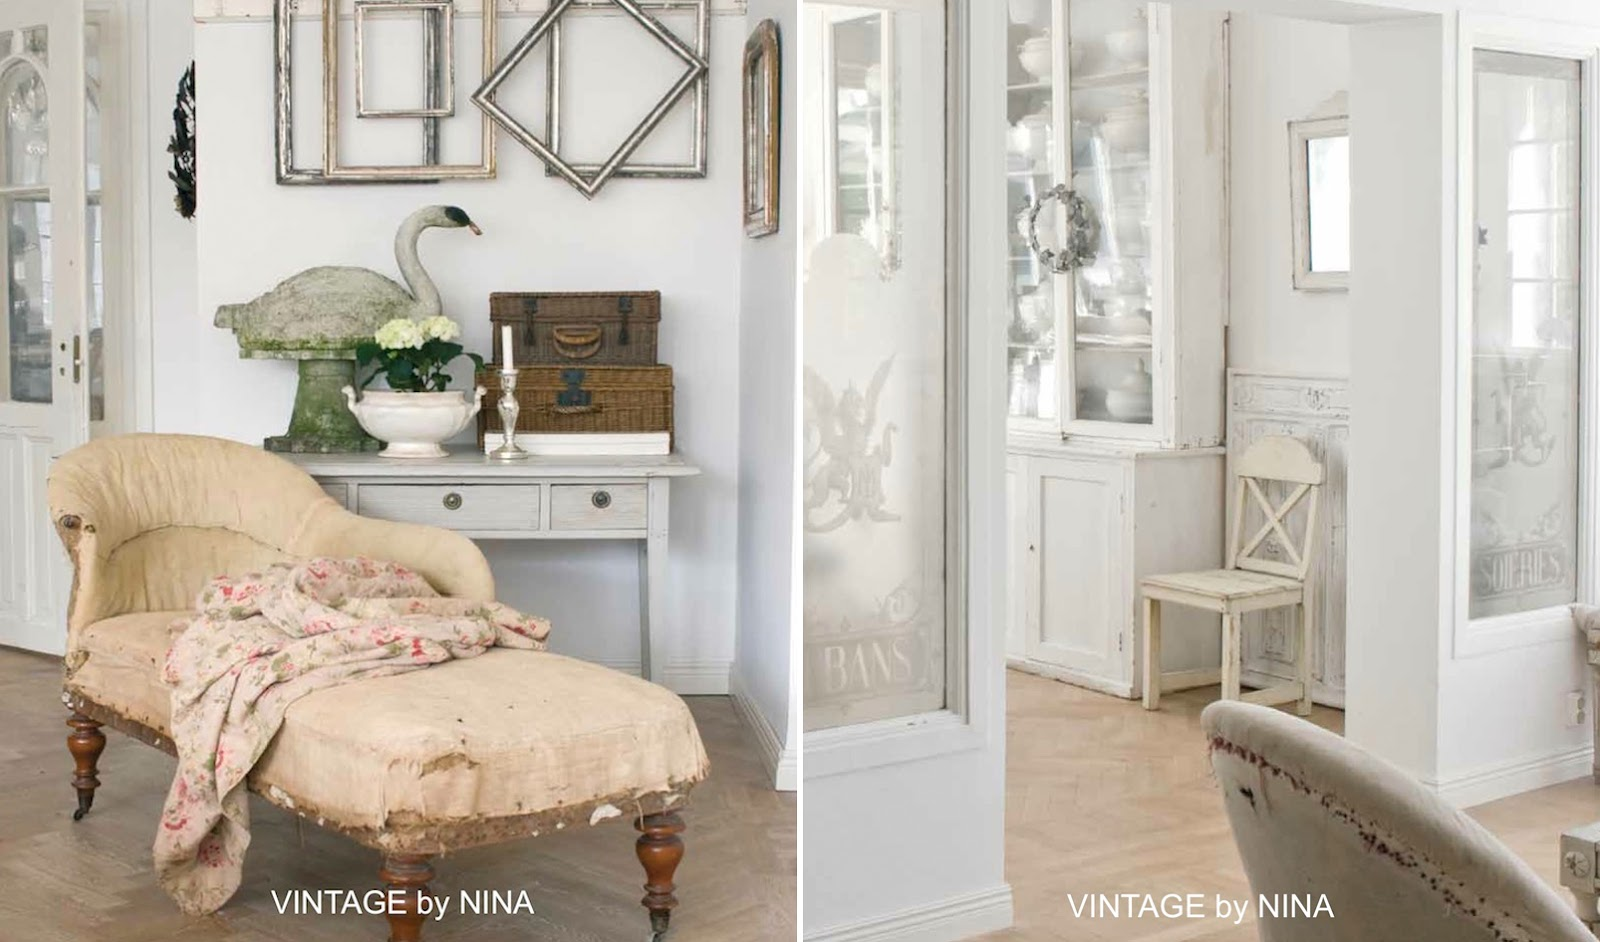 ispirazione vintage shabby chic interiors. Black Bedroom Furniture Sets. Home Design Ideas